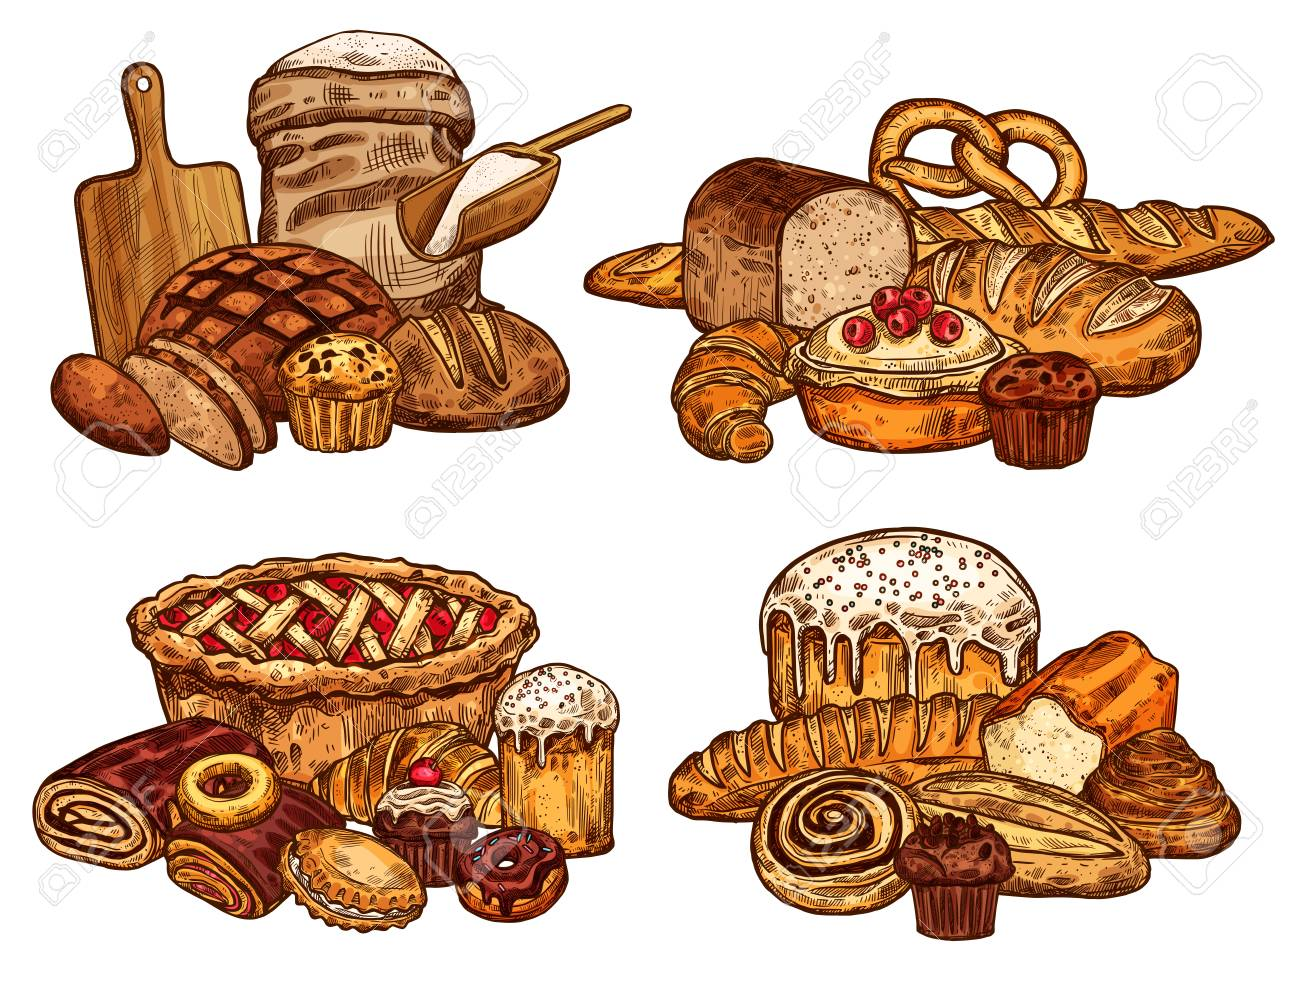 Bakery shop bread and pastry sketch. Vector design of wheat loaf and rye bagel or croissant baguette, flour bag and cutting board with rolling pin, chocolate donut or sweet cookie for patisserie - 104313435